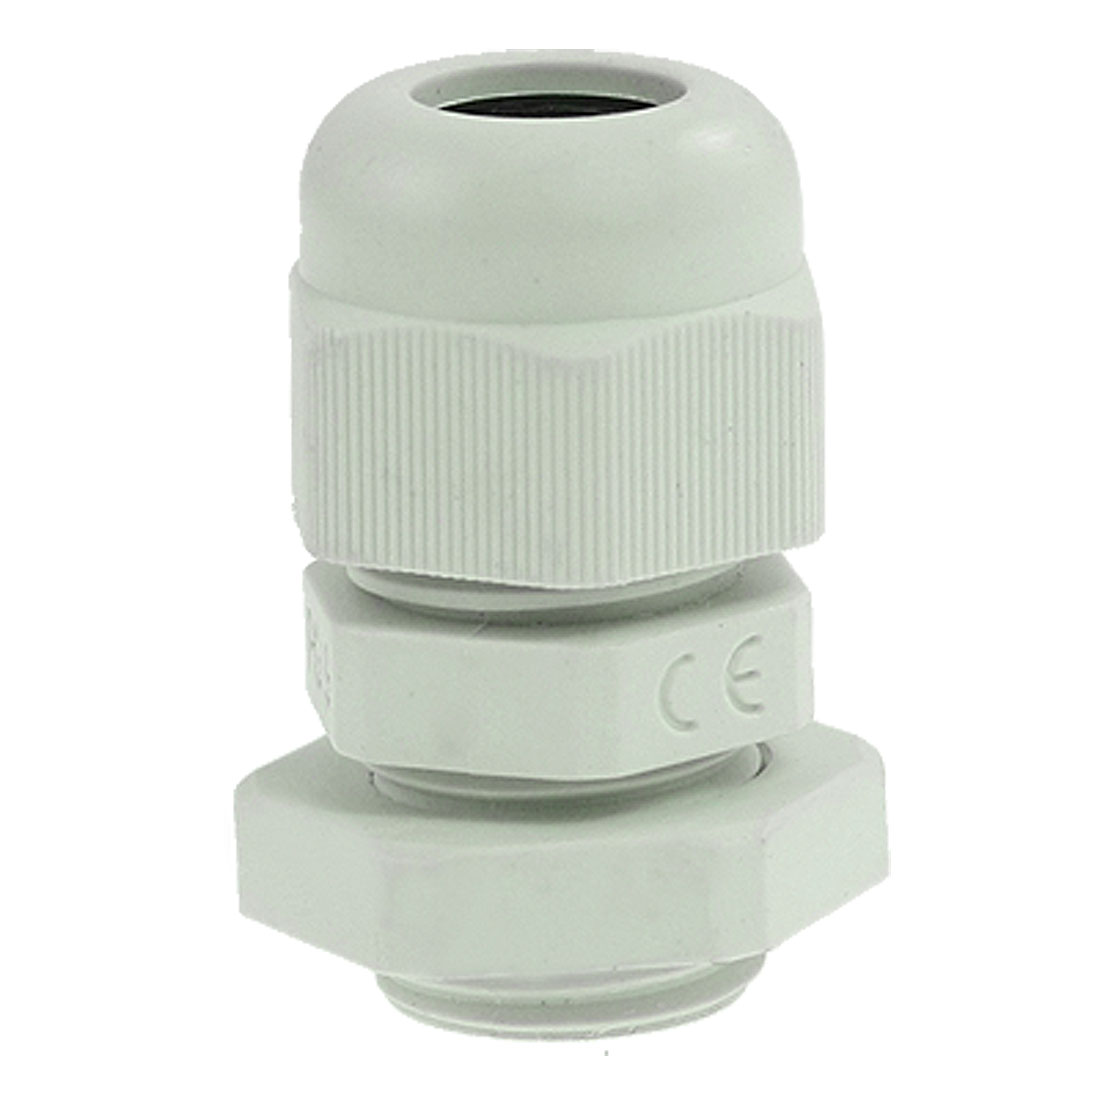 PG9 Gray Plastic Waterproof 4-8mm Diameter Cable Gland Joint